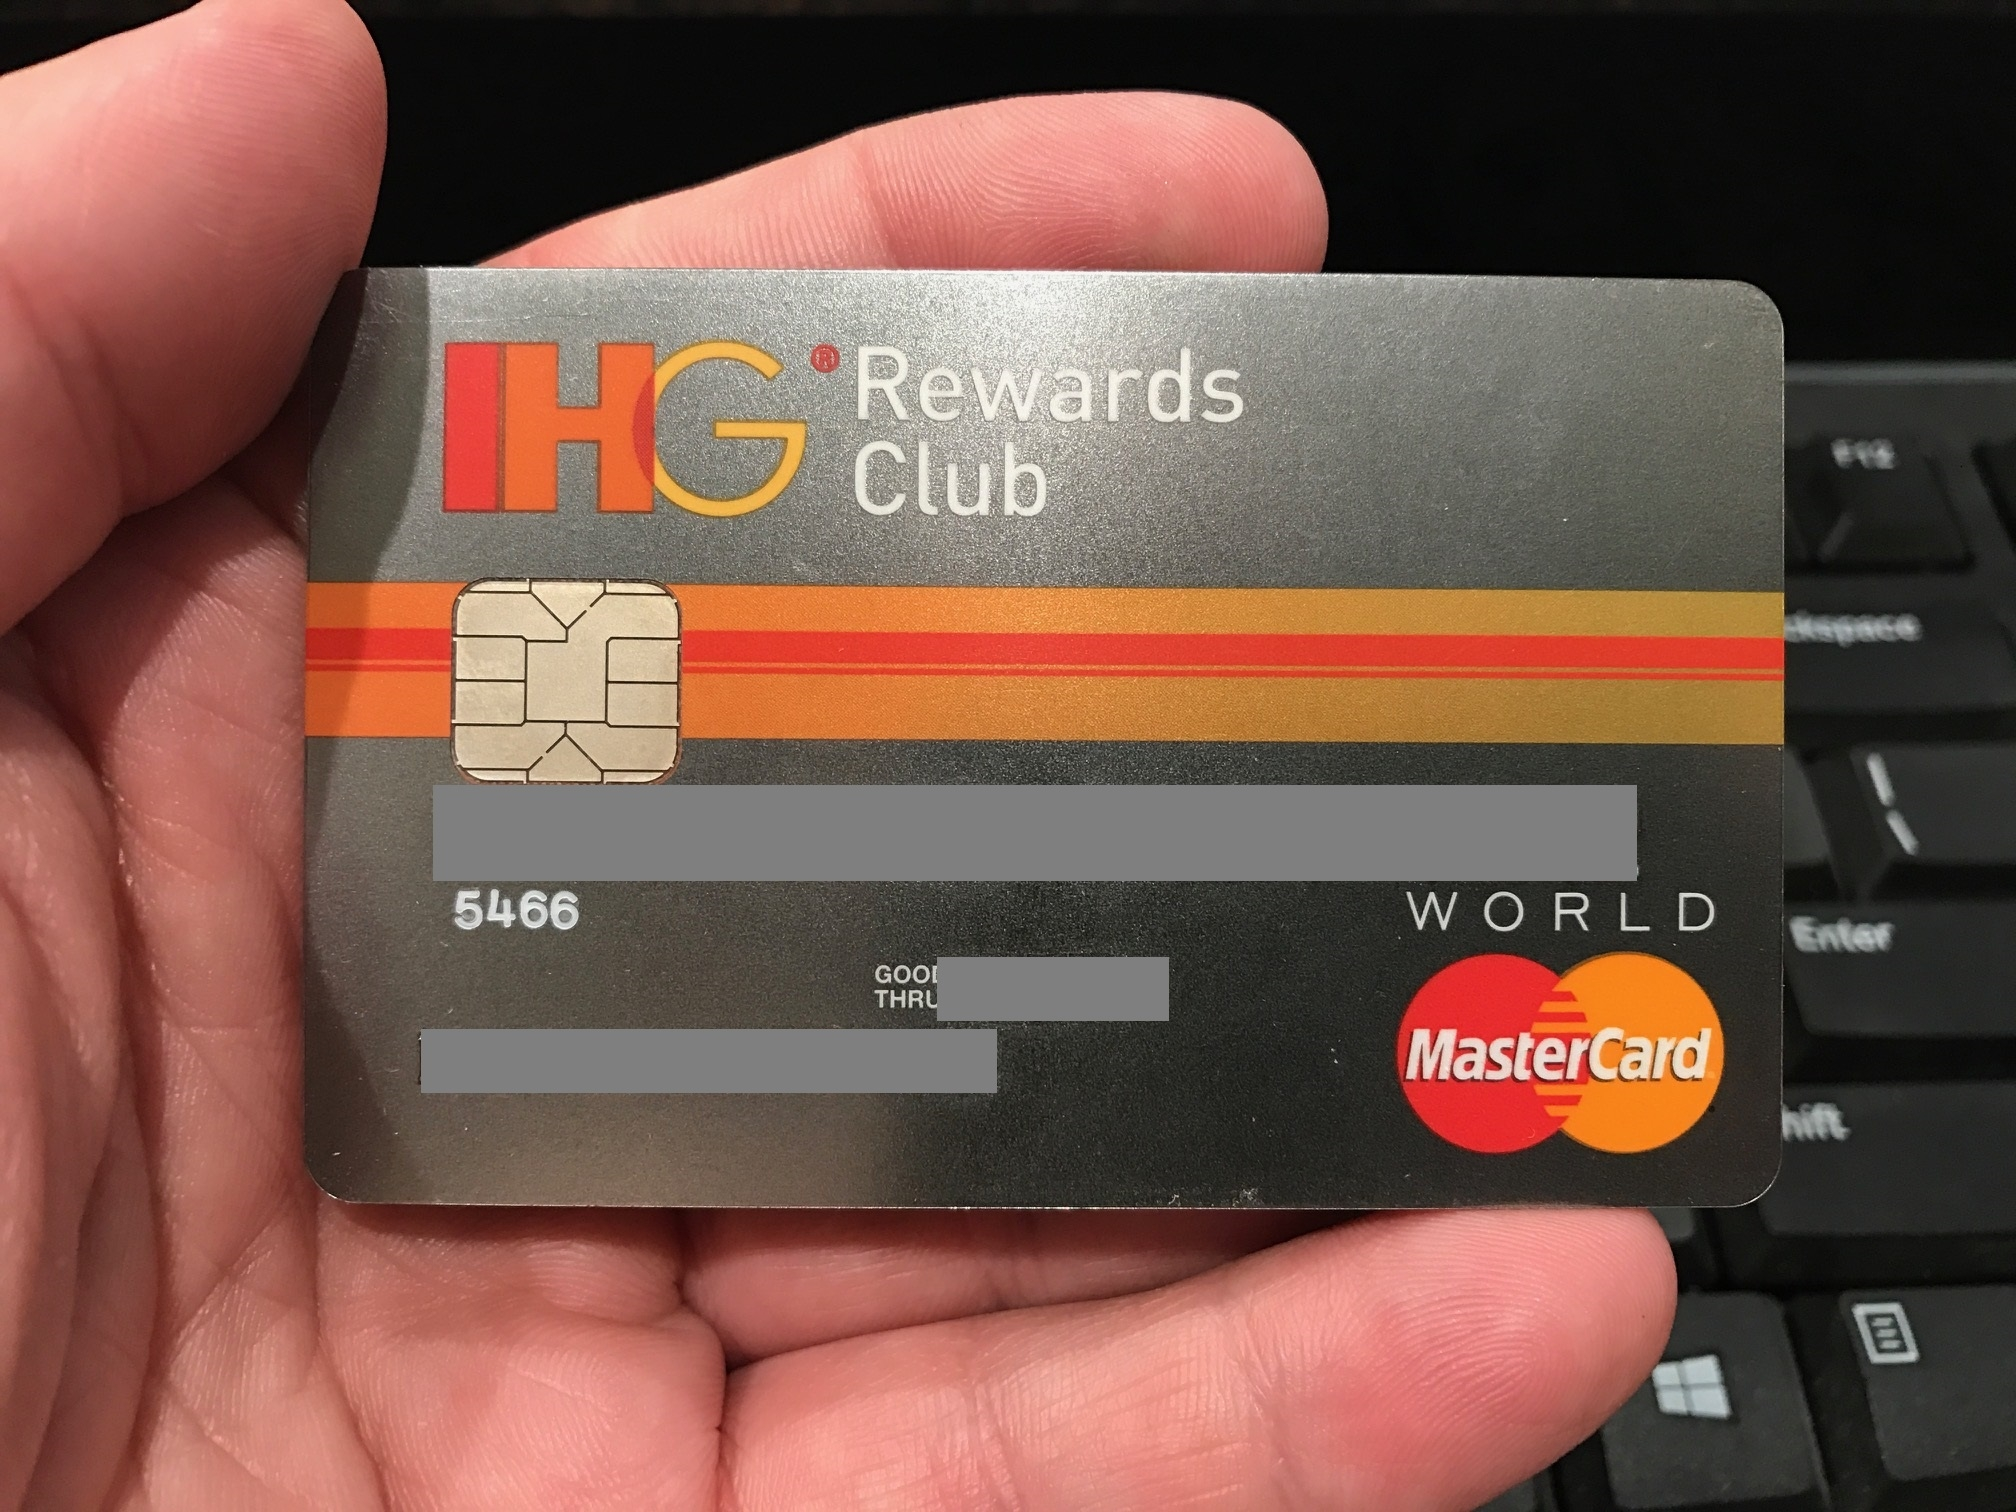 Chase IHG Rewards credit card